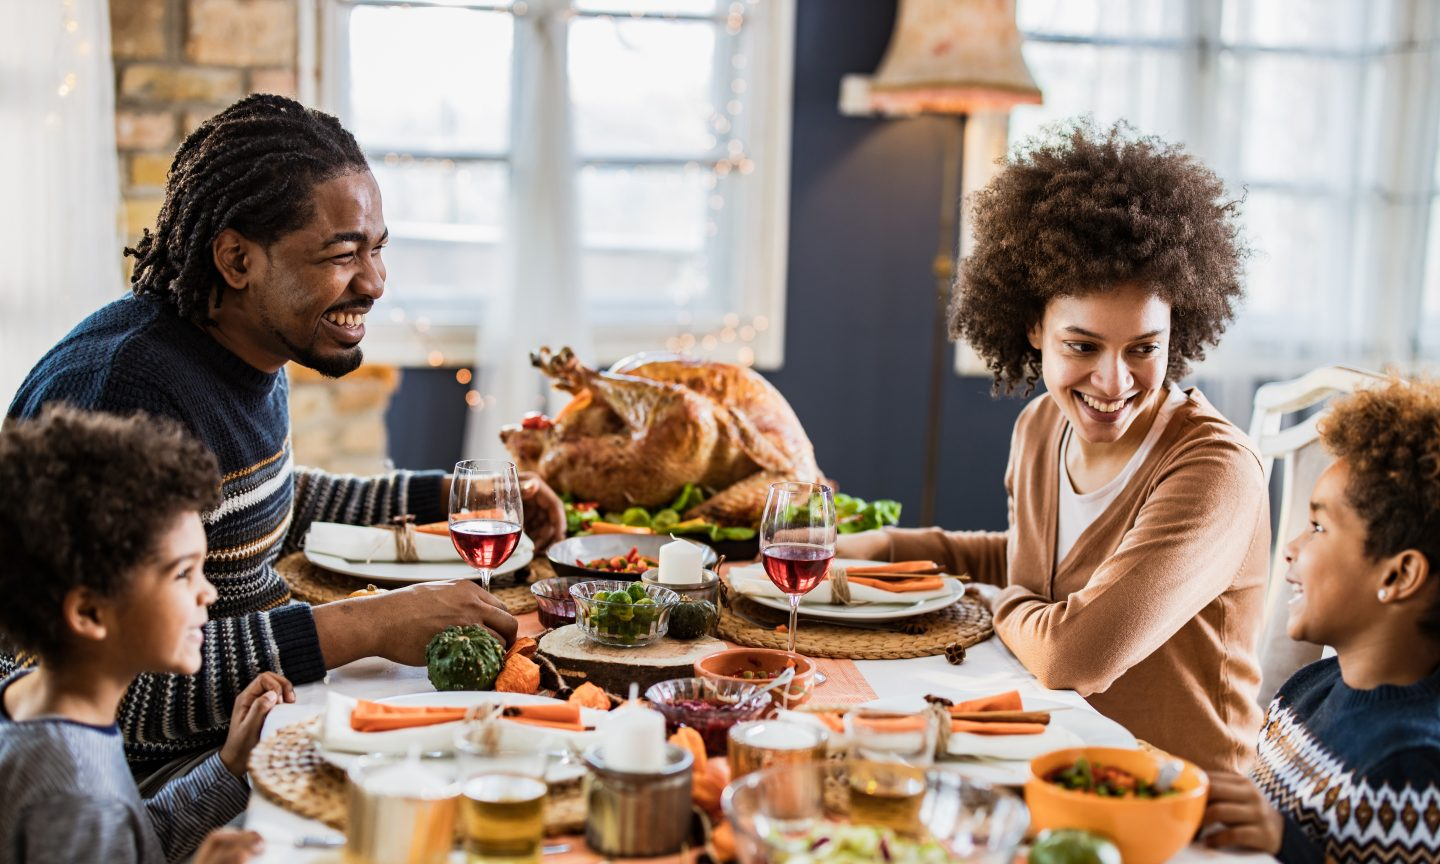 Changed Travel Plans on the Menu This Thanksgiving - NerdWallet